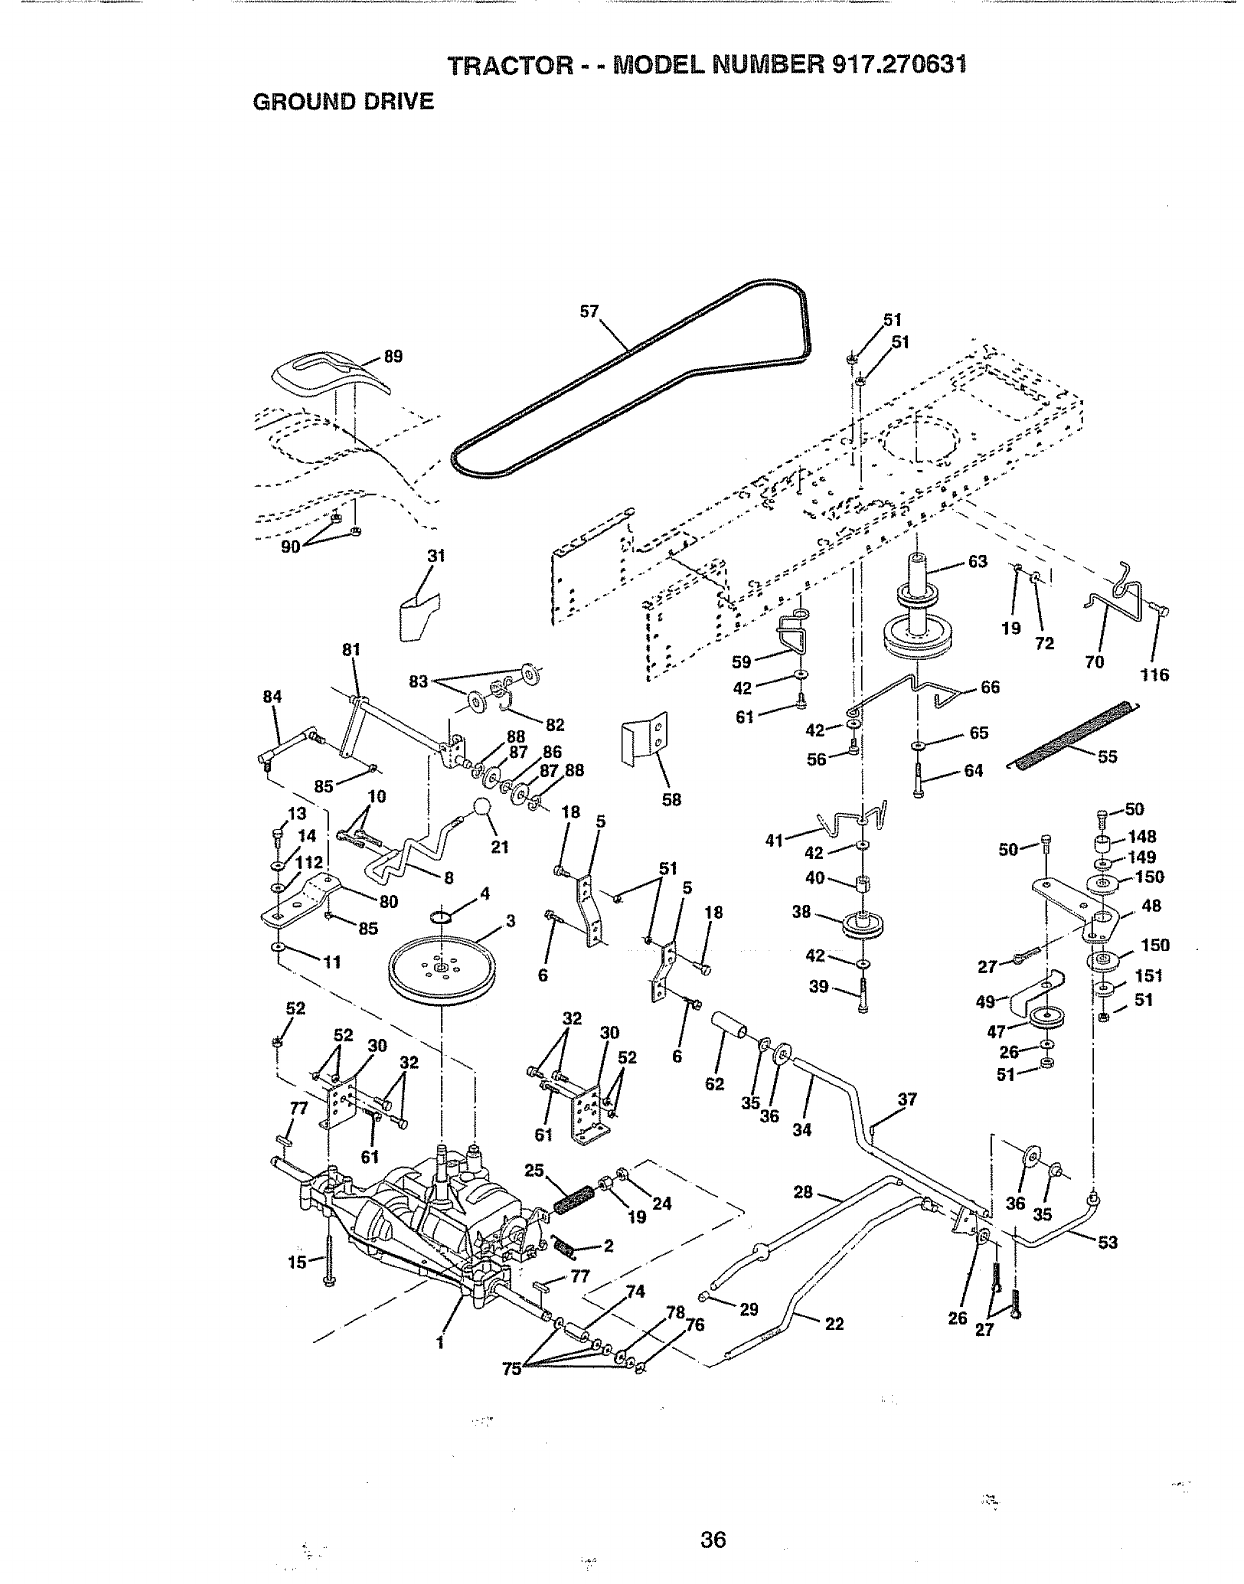 Page 36 of Craftsman Lawn Mower 917.270631 User Guide